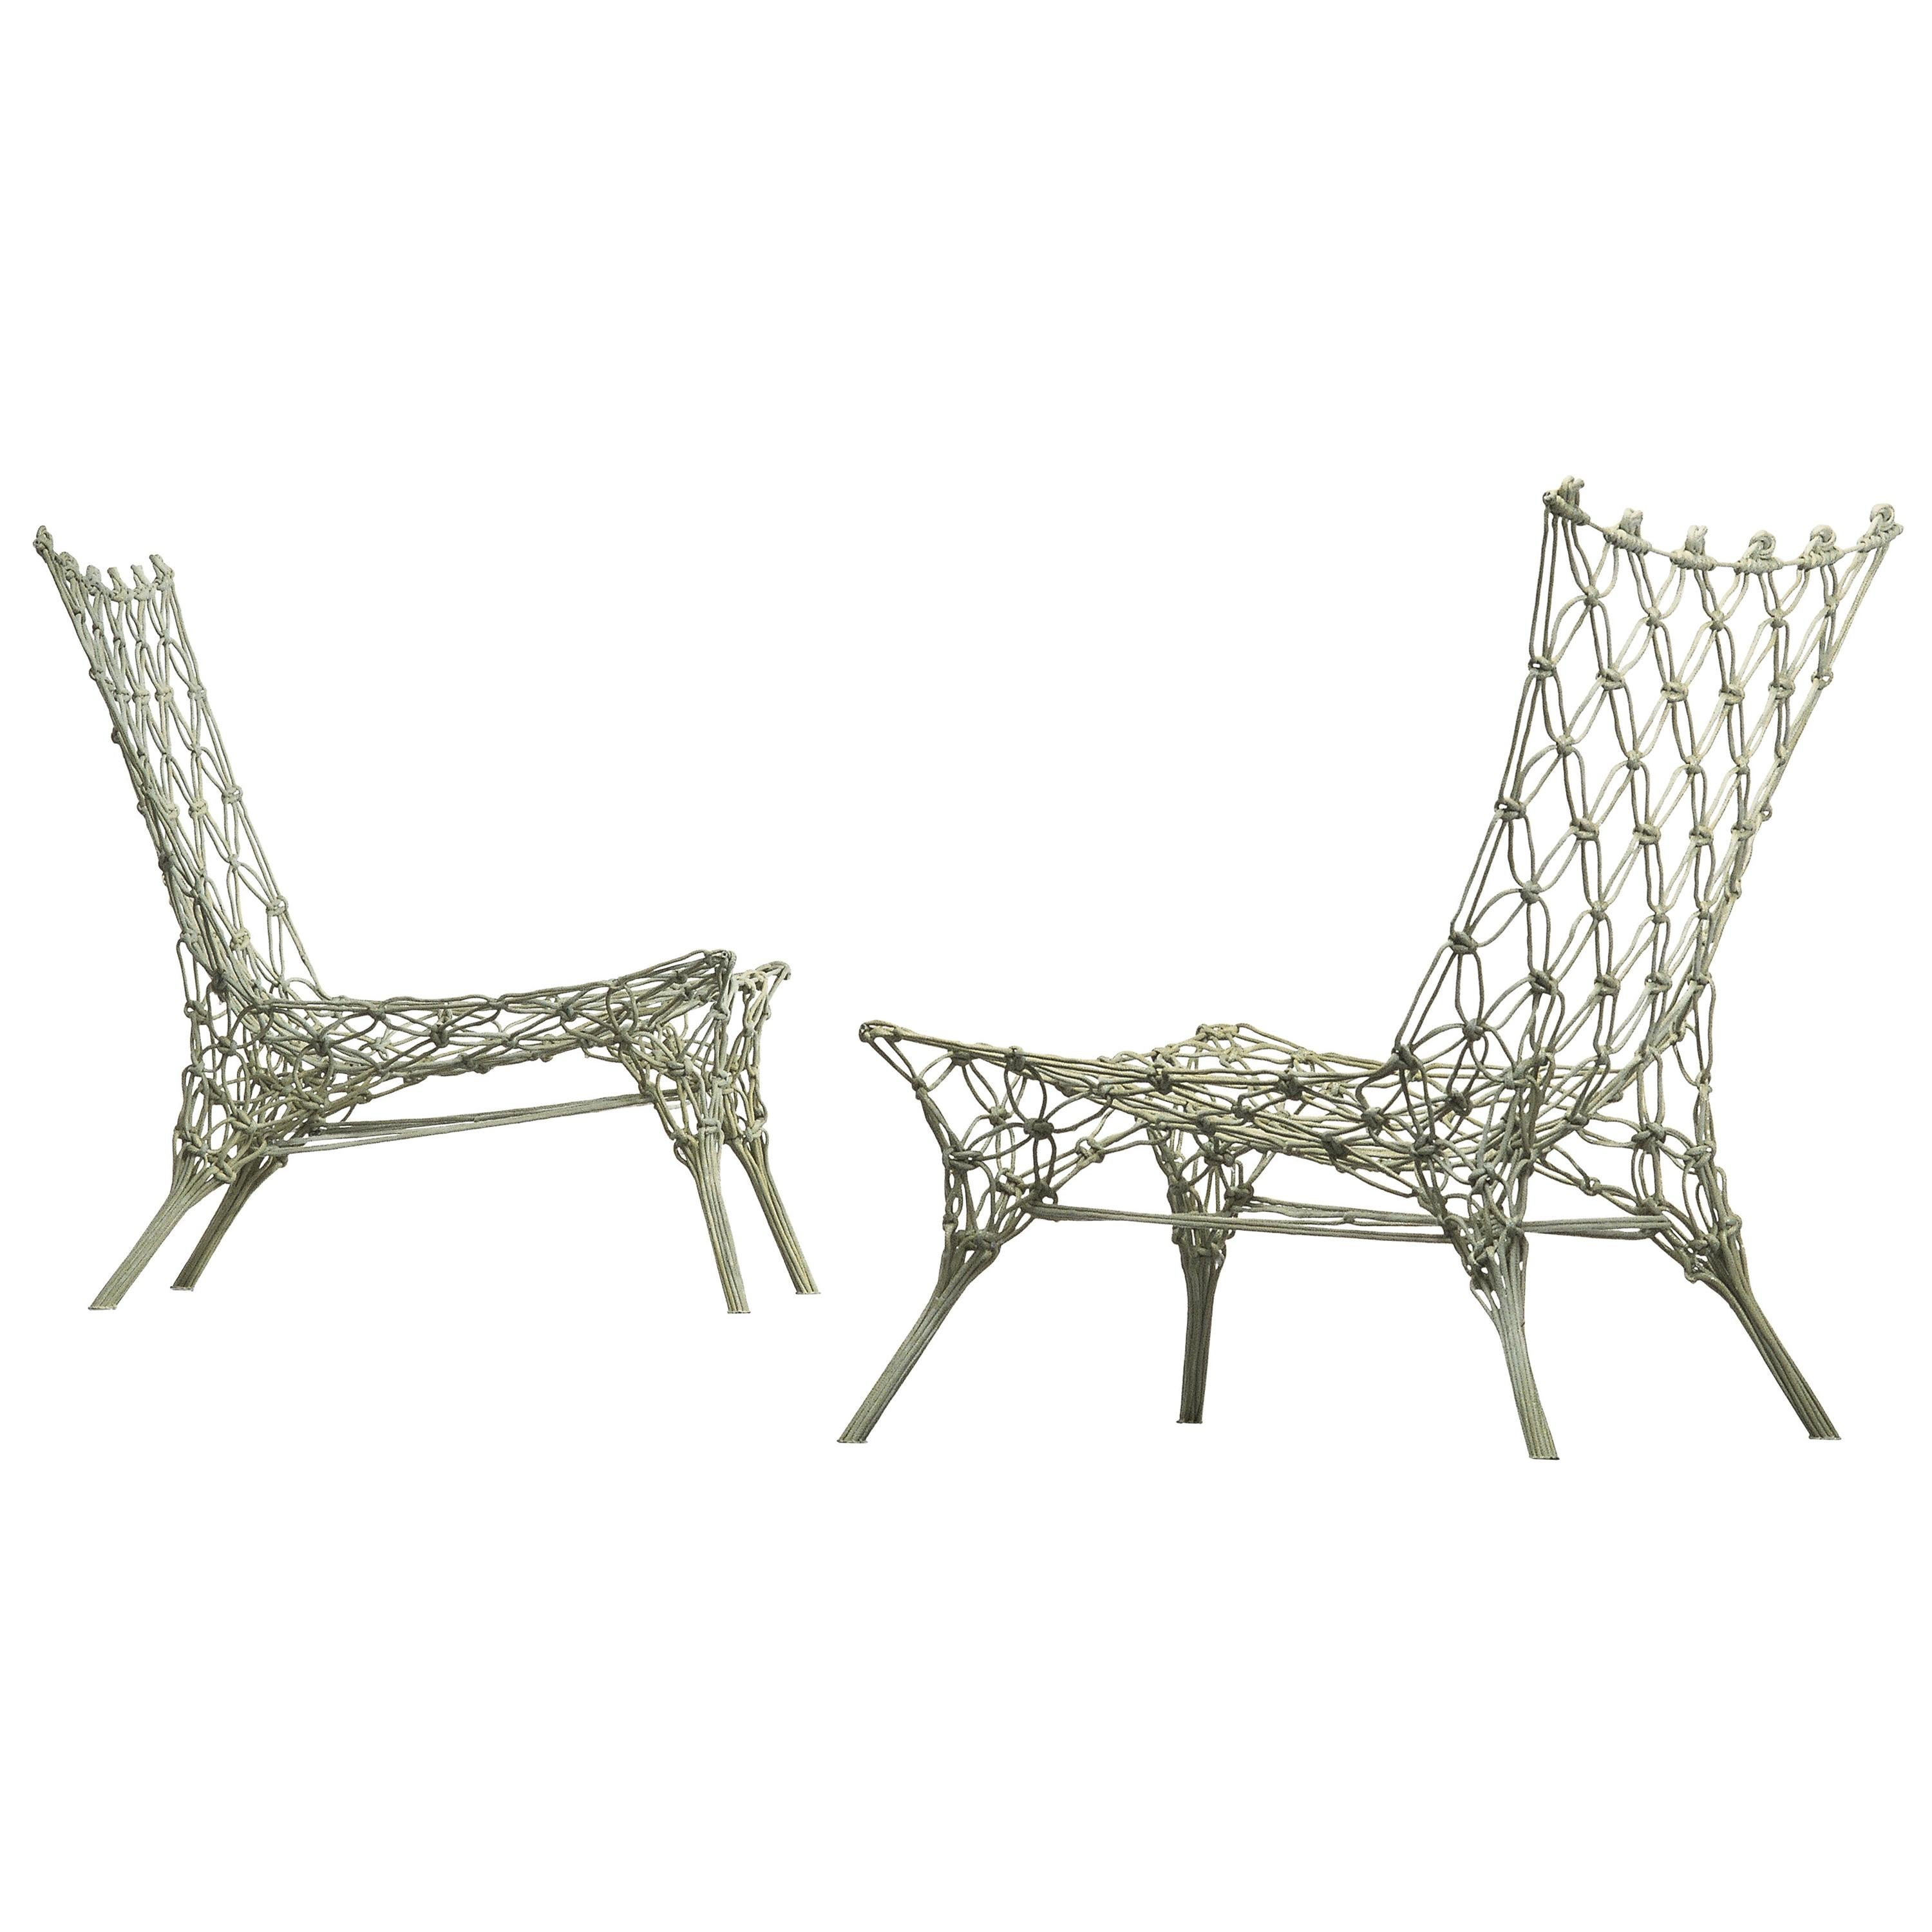 Marcel Wanders Knotted Armchair in Carbon with Aramid Fiber Cord for Cappellini